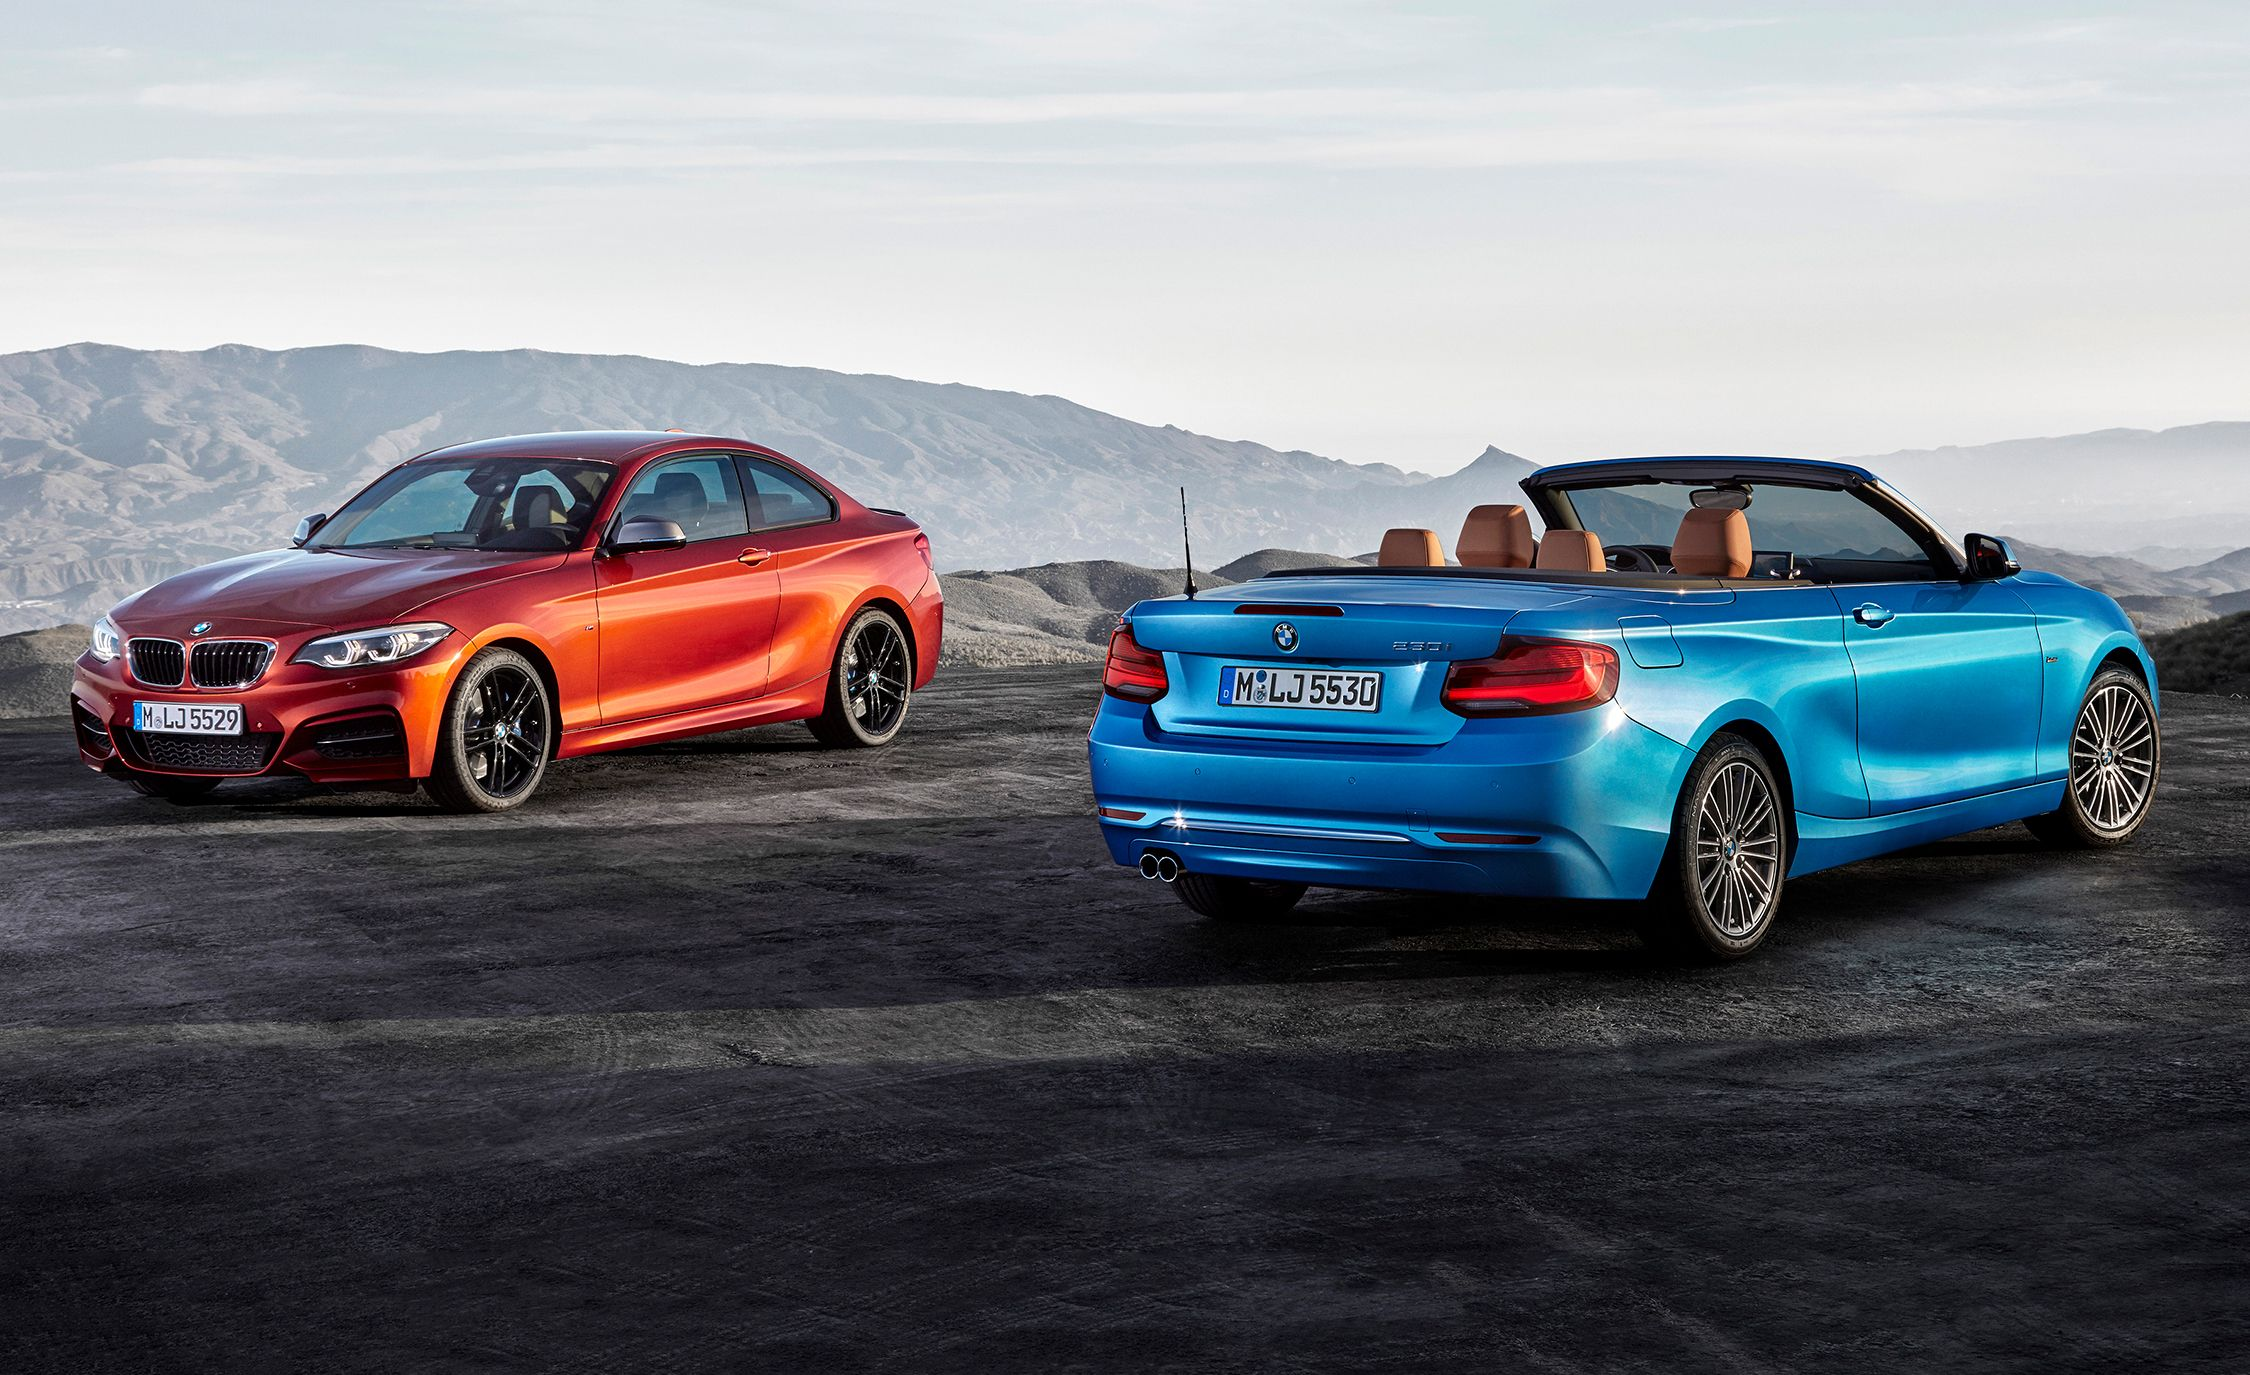 2018 Bmw 2 Series Photos And Info News Car And Driver